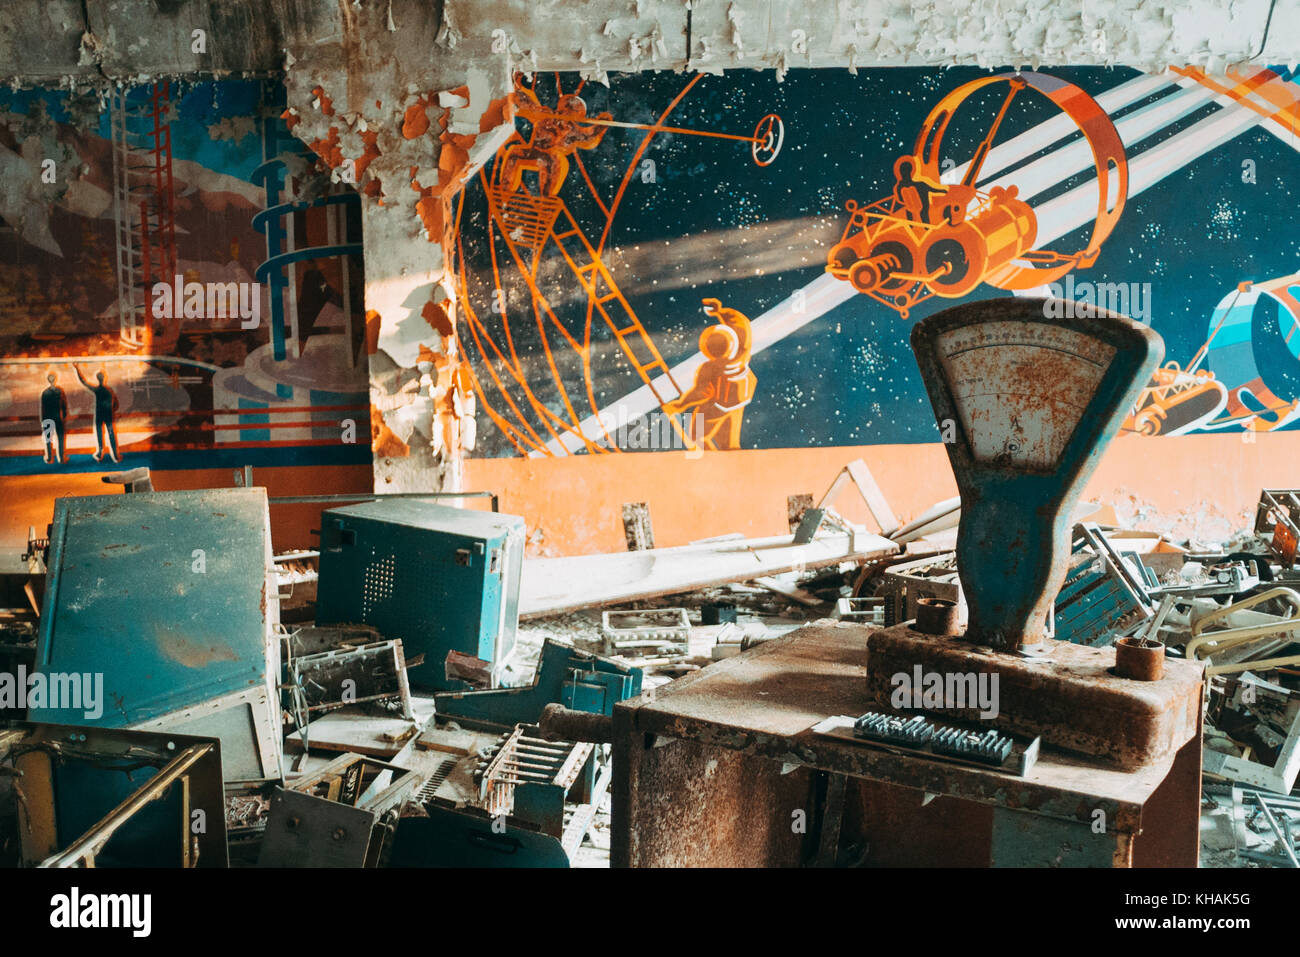 Wall art found inside the secret radar station at Chernobyl, Ukraine - Stock Image